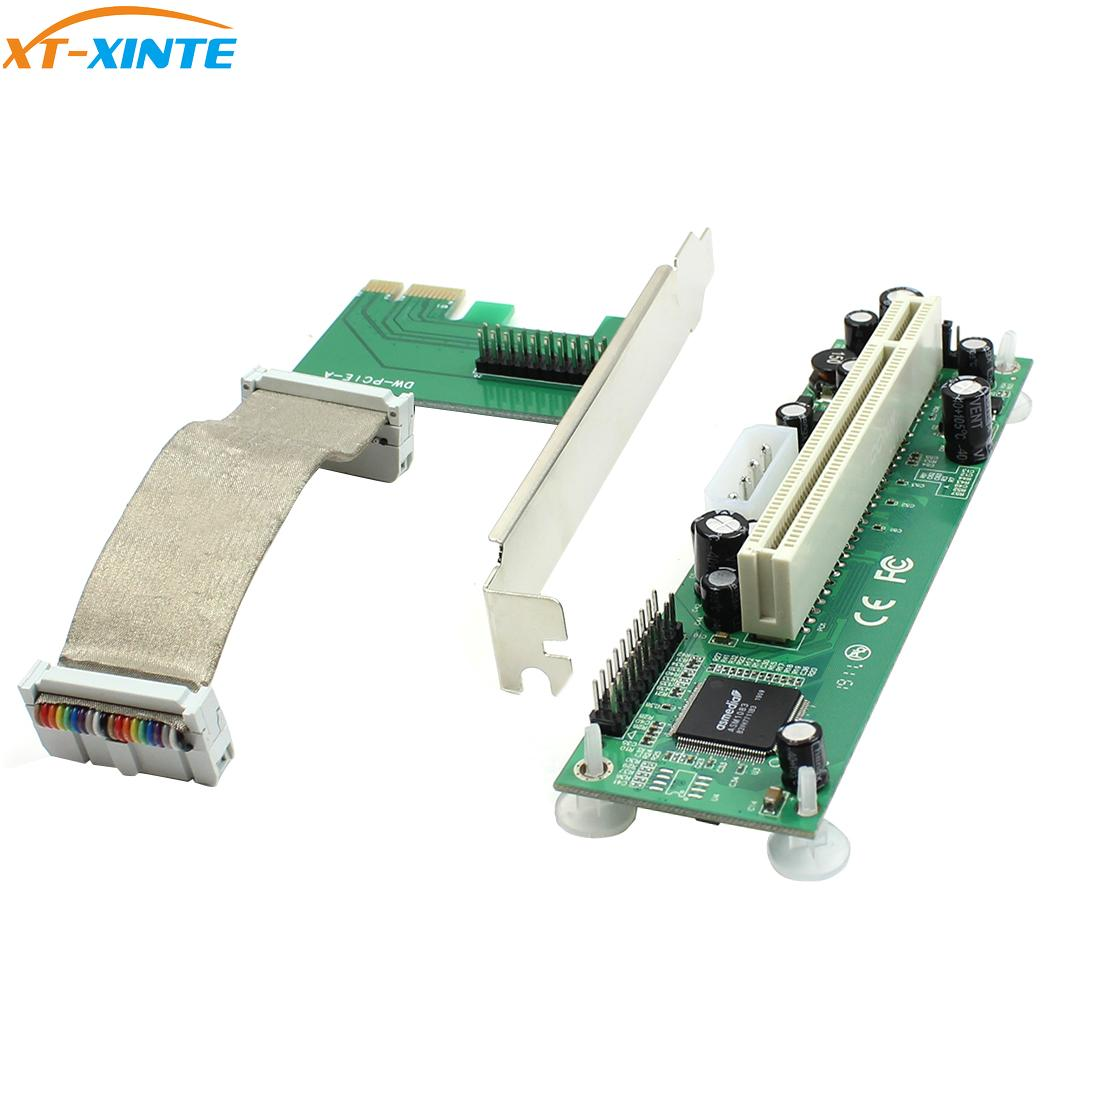 XT-XINTE PCI-E PCI Express To PCI Adapter Flexible CablecCard Extender For Bitcoin Miner